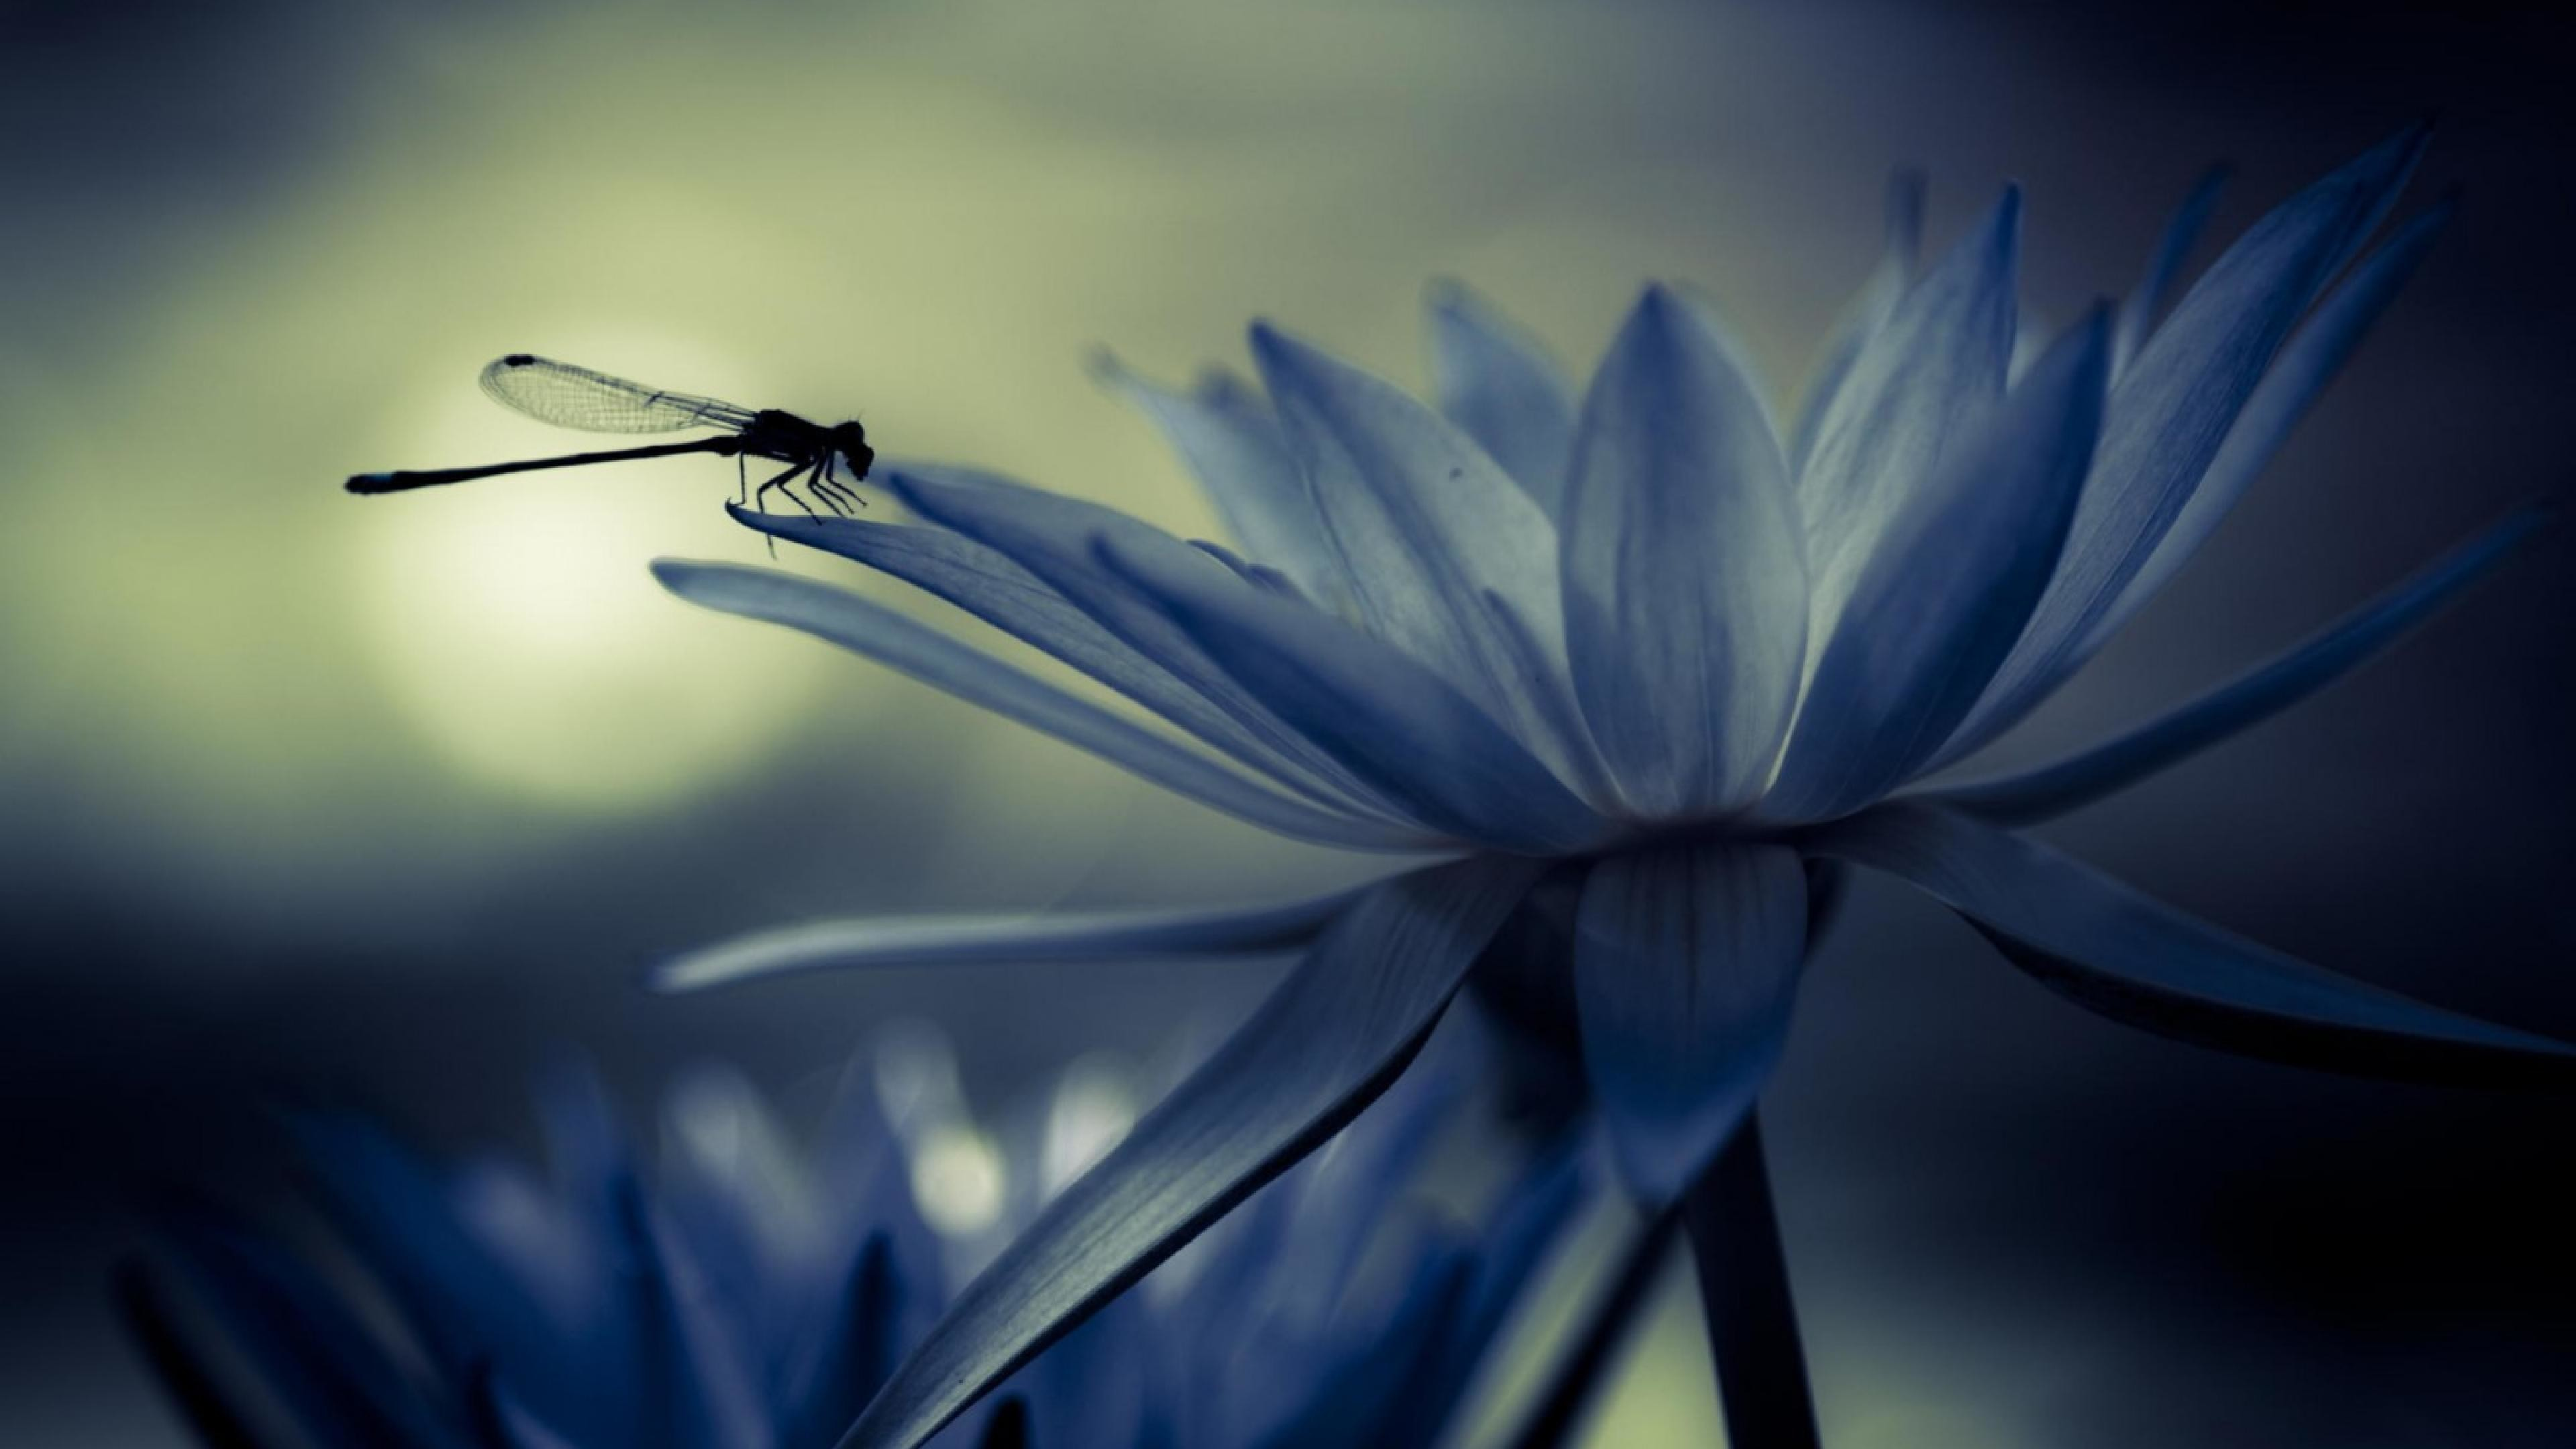 Free Dragonfly Wallpapers And Screensavers, 45 Dragonfly HDQ .